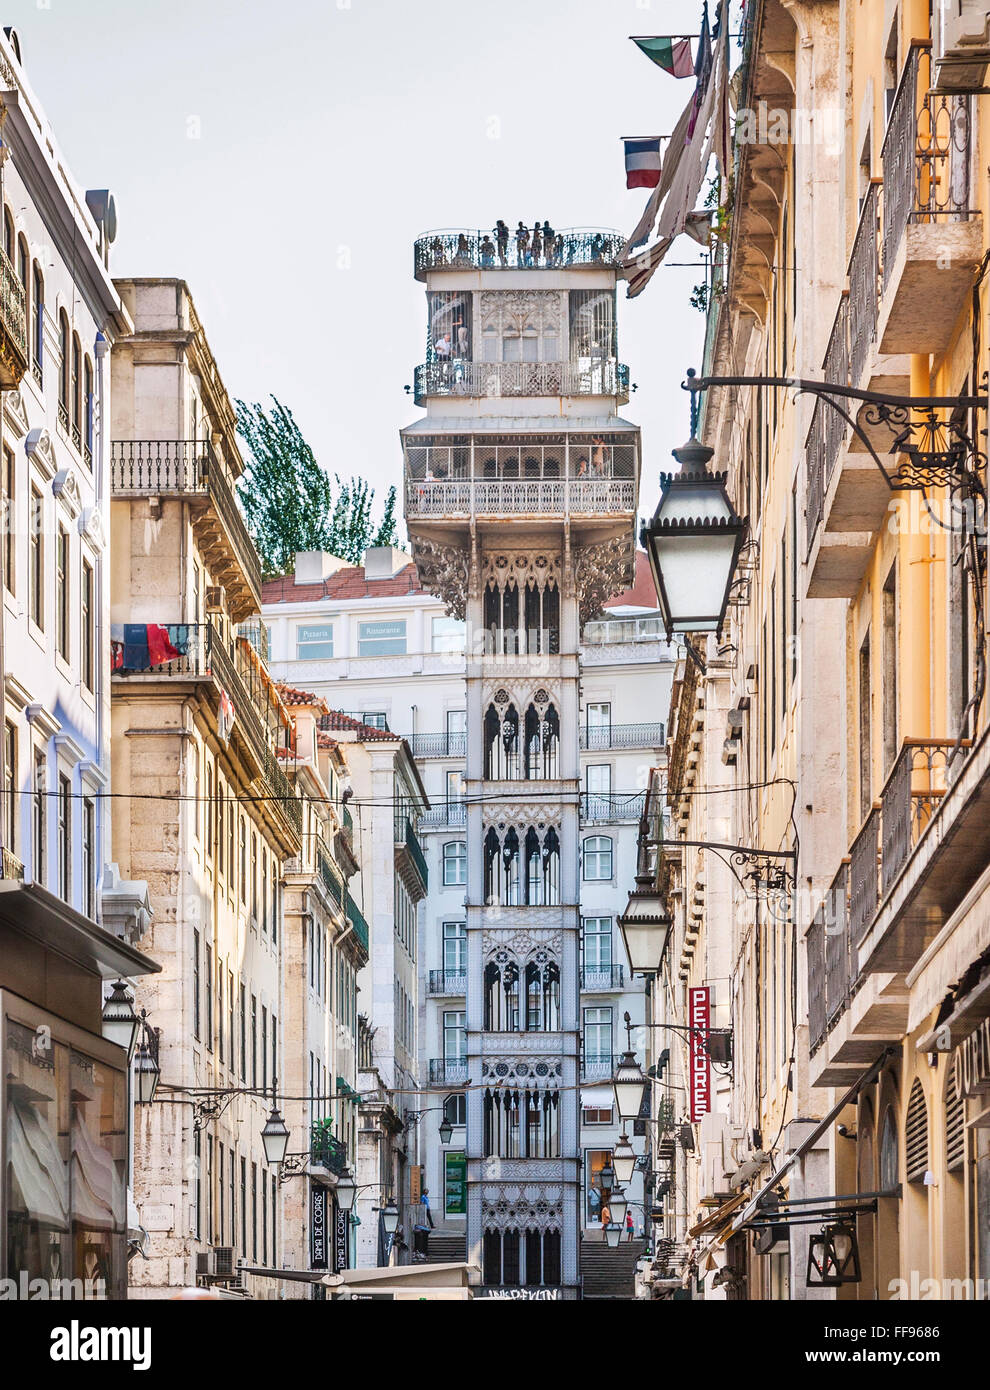 Portugal, Lisbon, Pombaline Downton, view of originally in 1874 built Santa Justa Lift in Neo-Gothic style - Stock Image